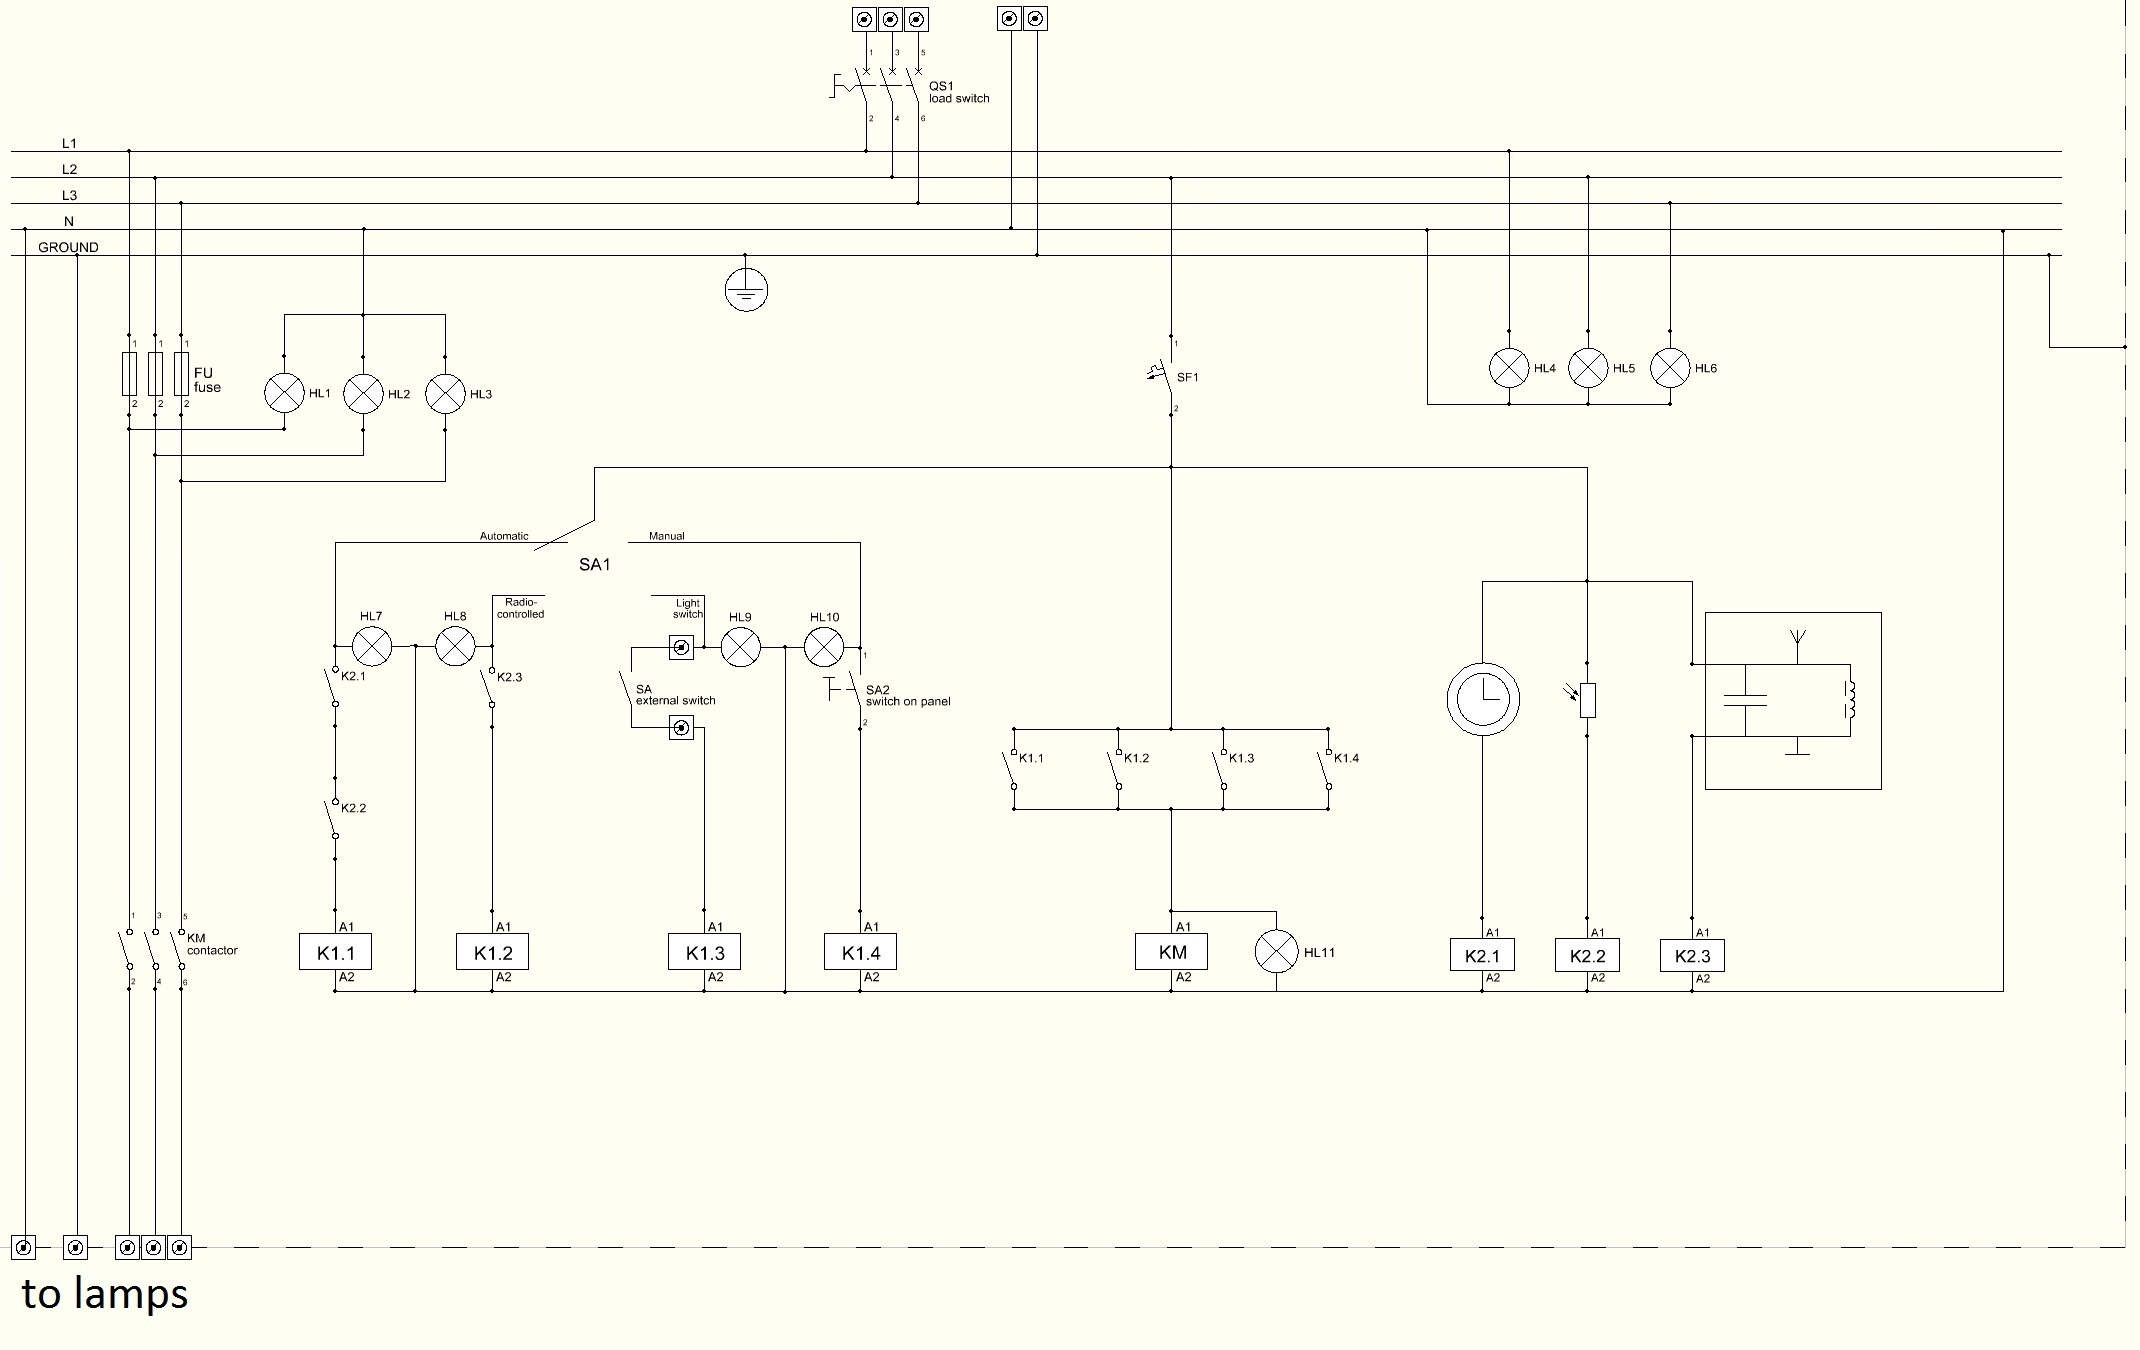 FileWiring diagram of lighting control panel for dummiesJPG – Pump Control Panel Wiring Diagram